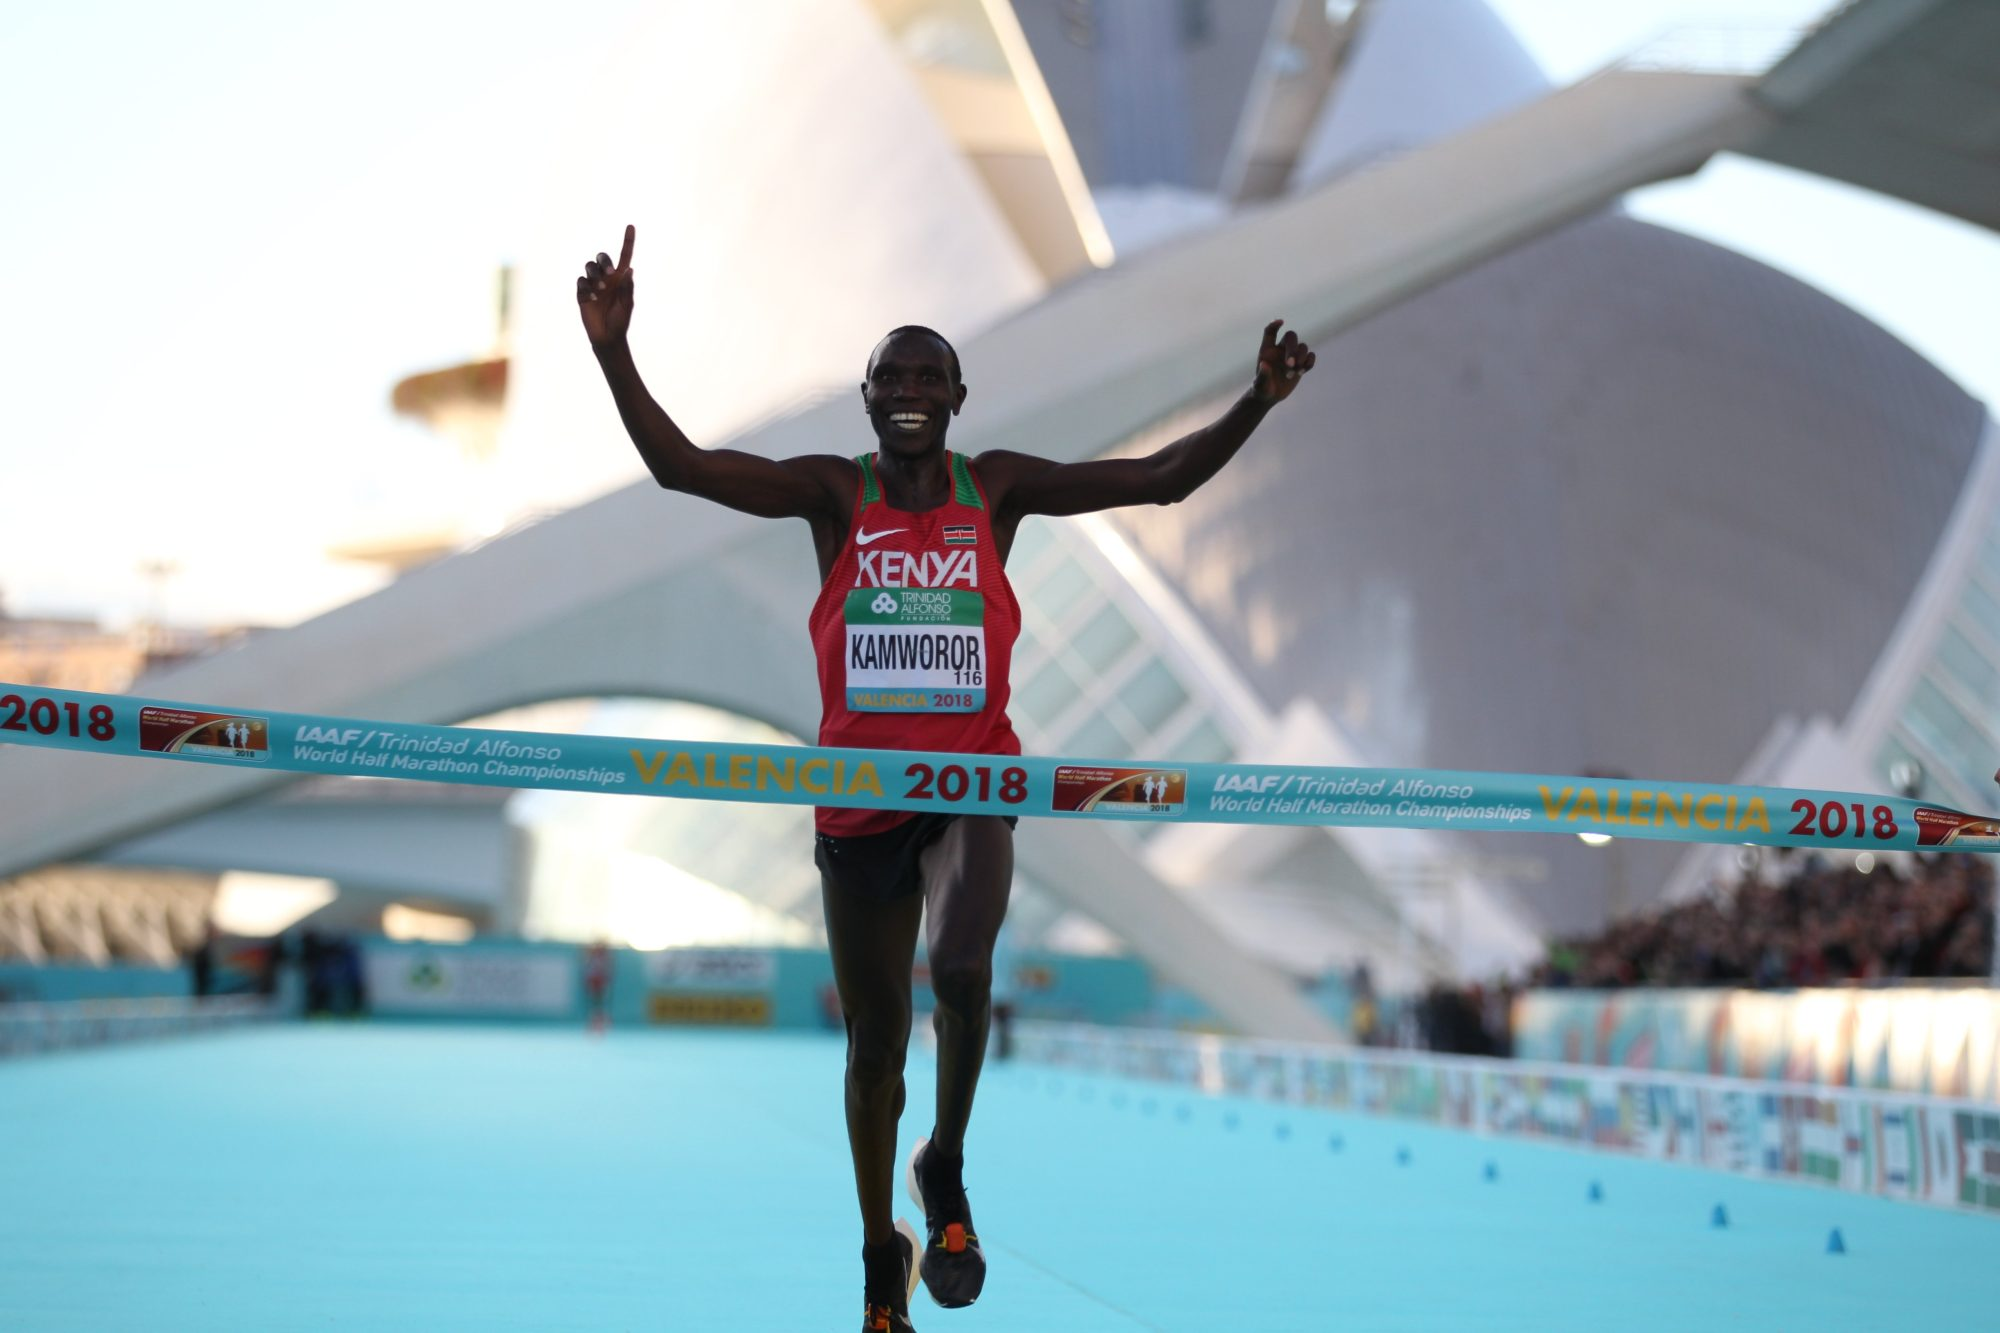 Kenya's Geoffrey Kamworor winning men's race at the IAAF World Half Marathon Valencia 2018 / Photo credit: IAAF.